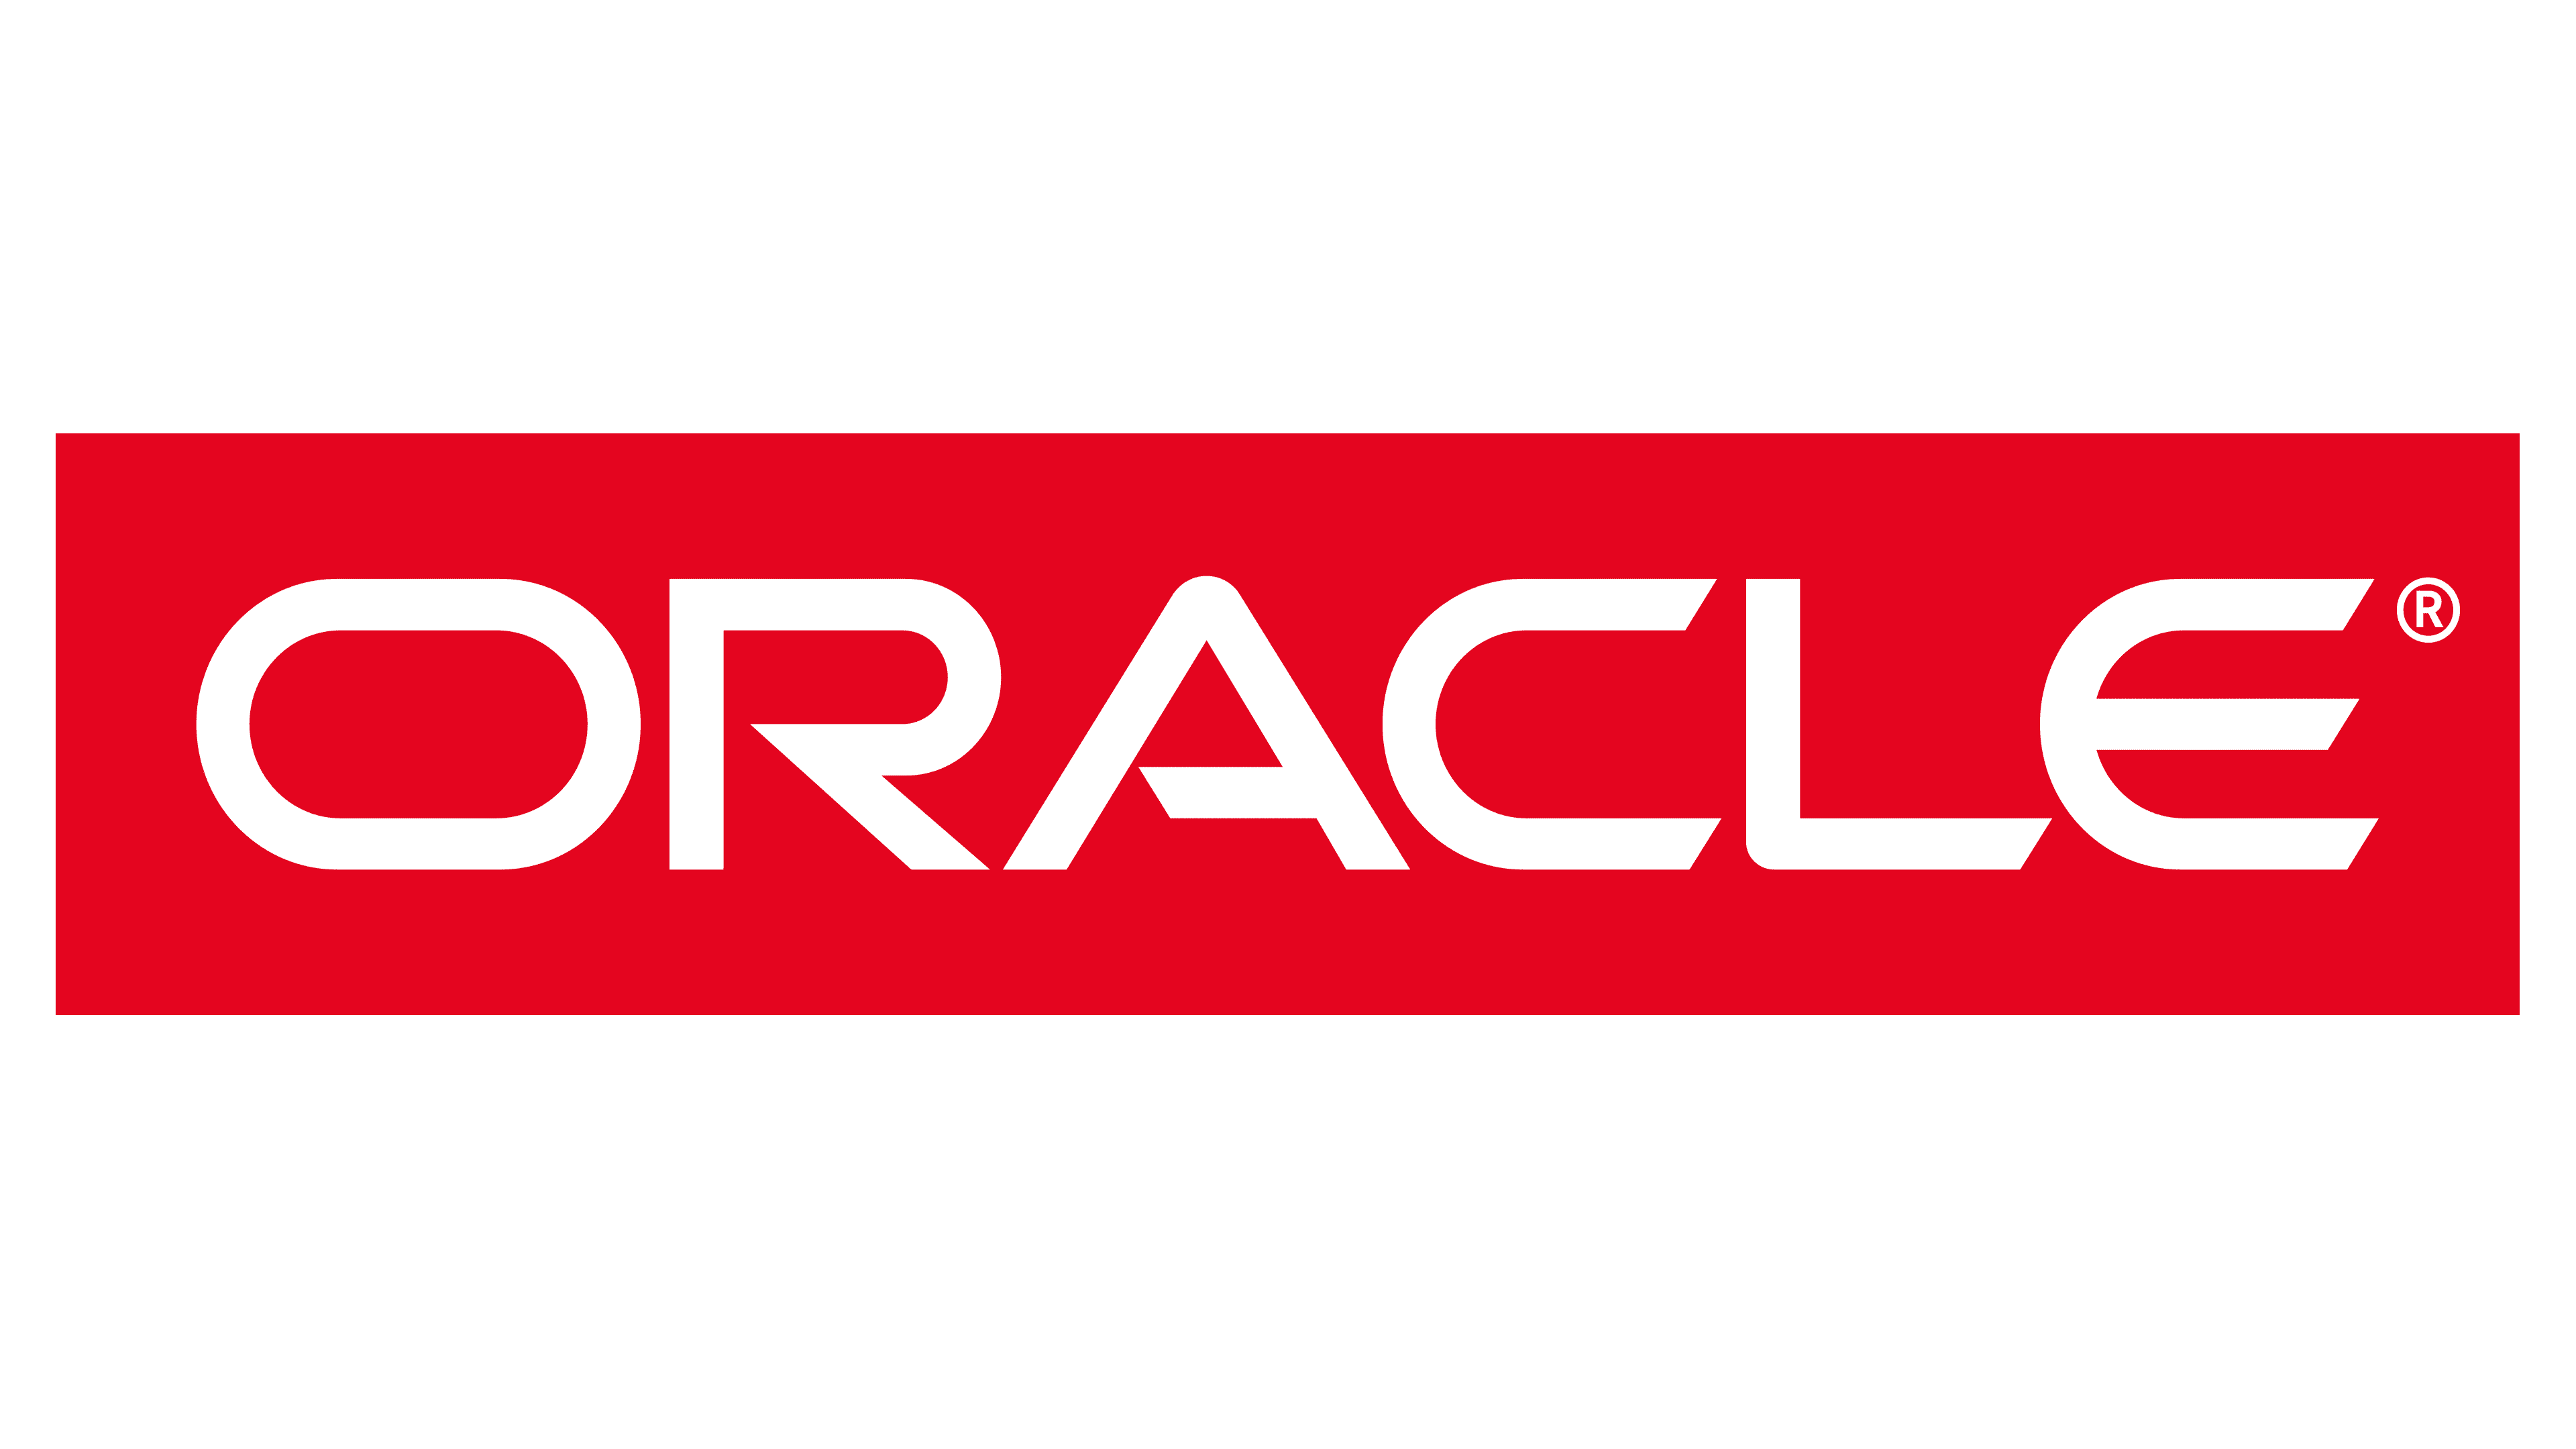 Oracle Bringing 8,500 High-wage Jobs To Nashville